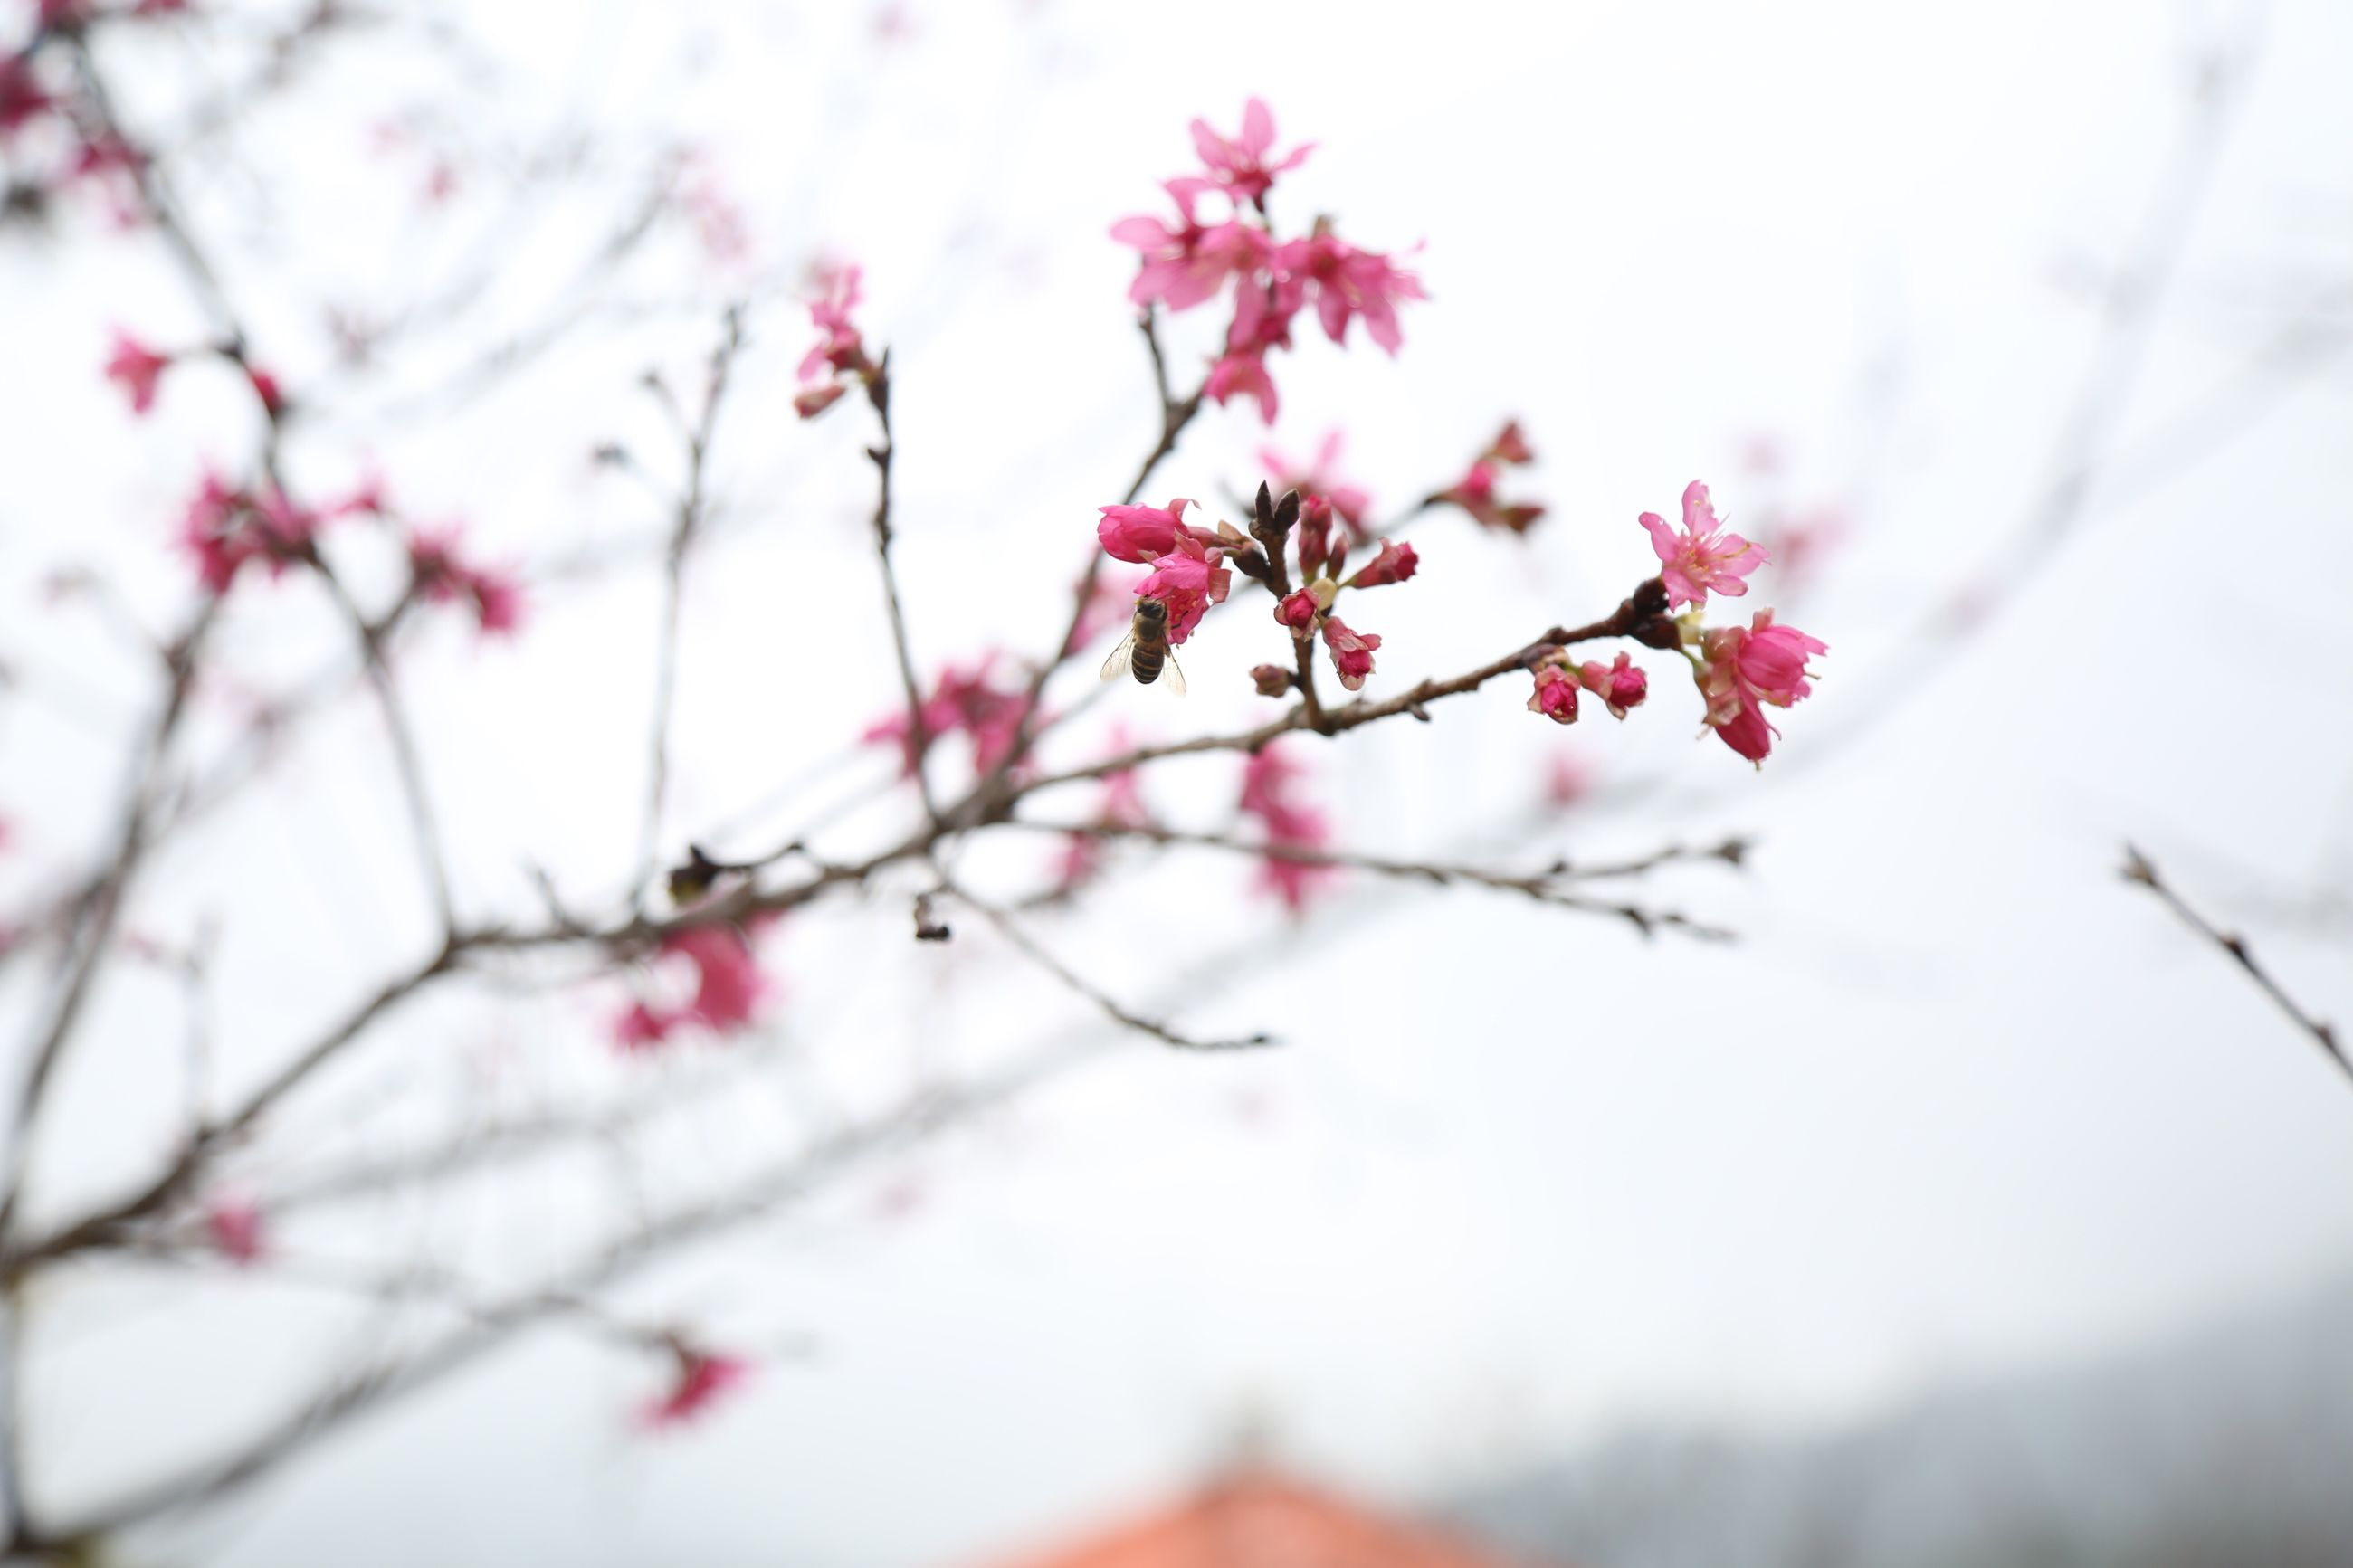 nature, growth, flower, tree, beauty in nature, freshness, branch, fragility, springtime, close-up, outdoors, blossom, low angle view, day, no people, twig, plum blossom, sky